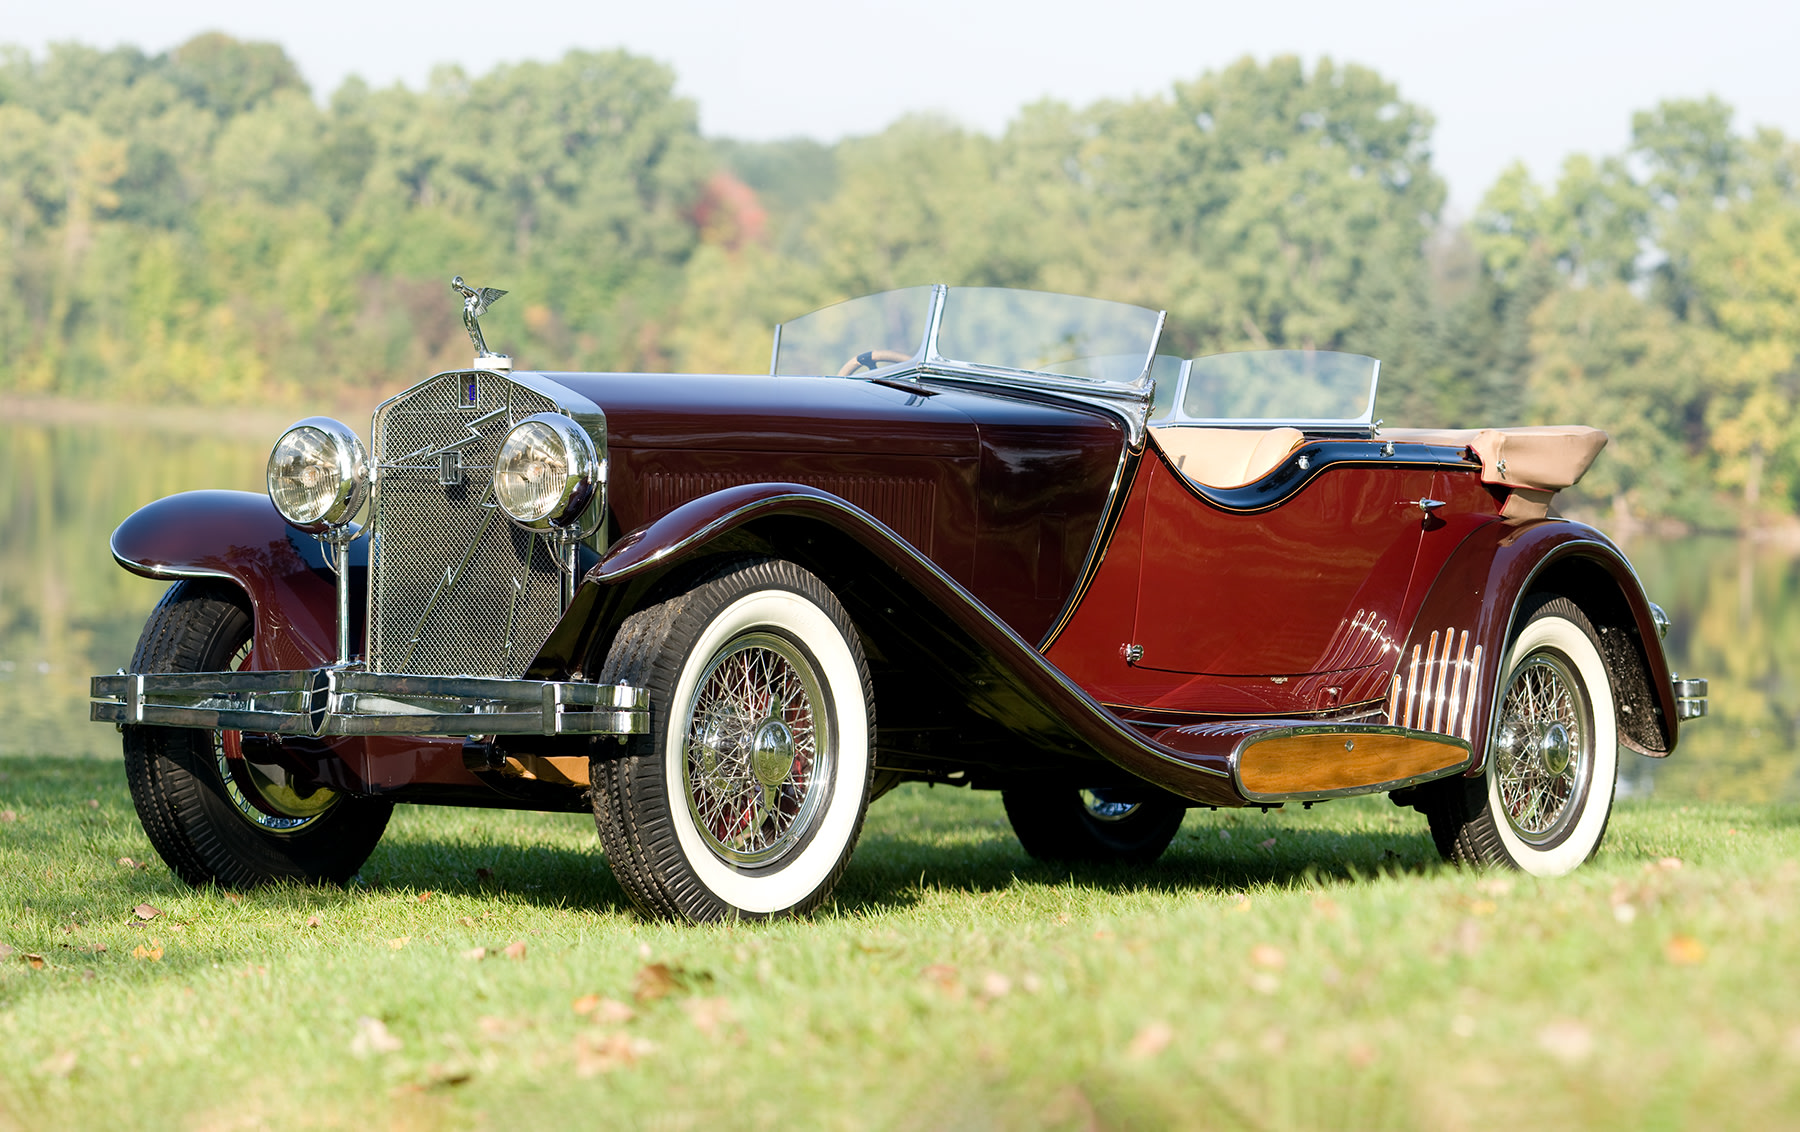 1933 Isotta Fraschini Tipo 8A Dual Cowl Sports Tourer